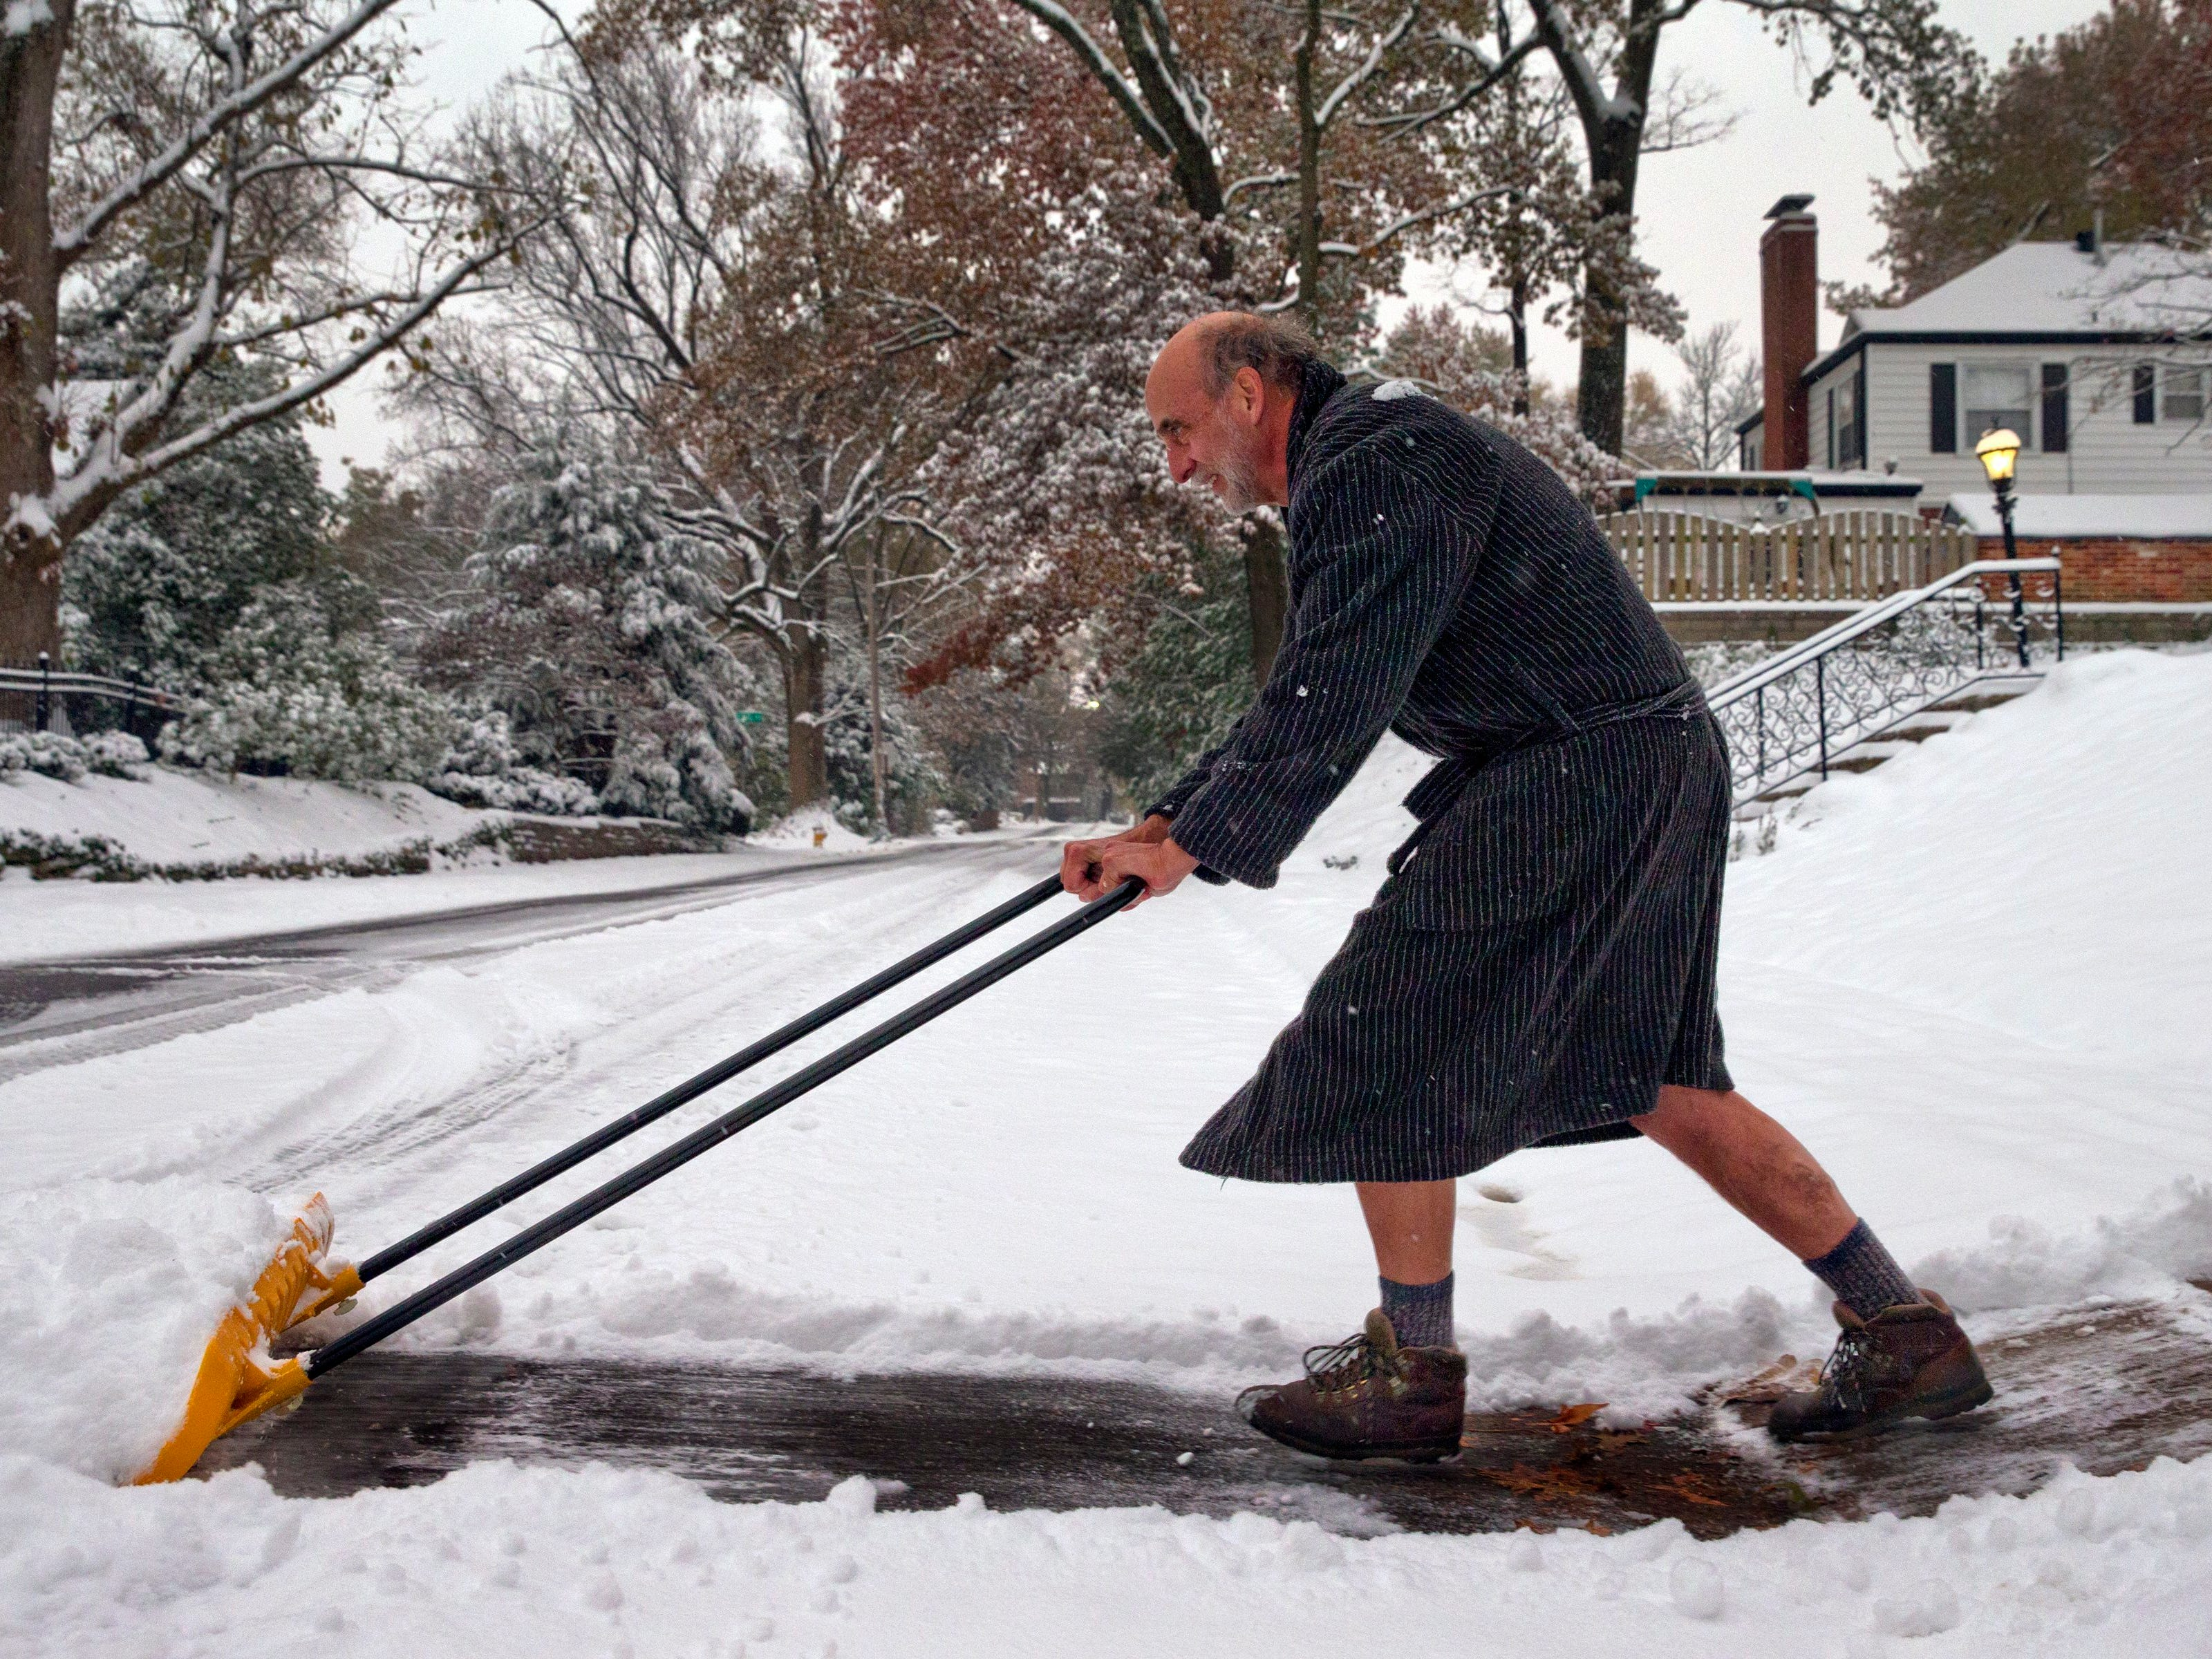 """Richard Burst clears snow from his driveway Thursday, Nov. 15, 2018 in St. Louis. """"All I really need to accomplish are two lanes for my car,"""" he said."""